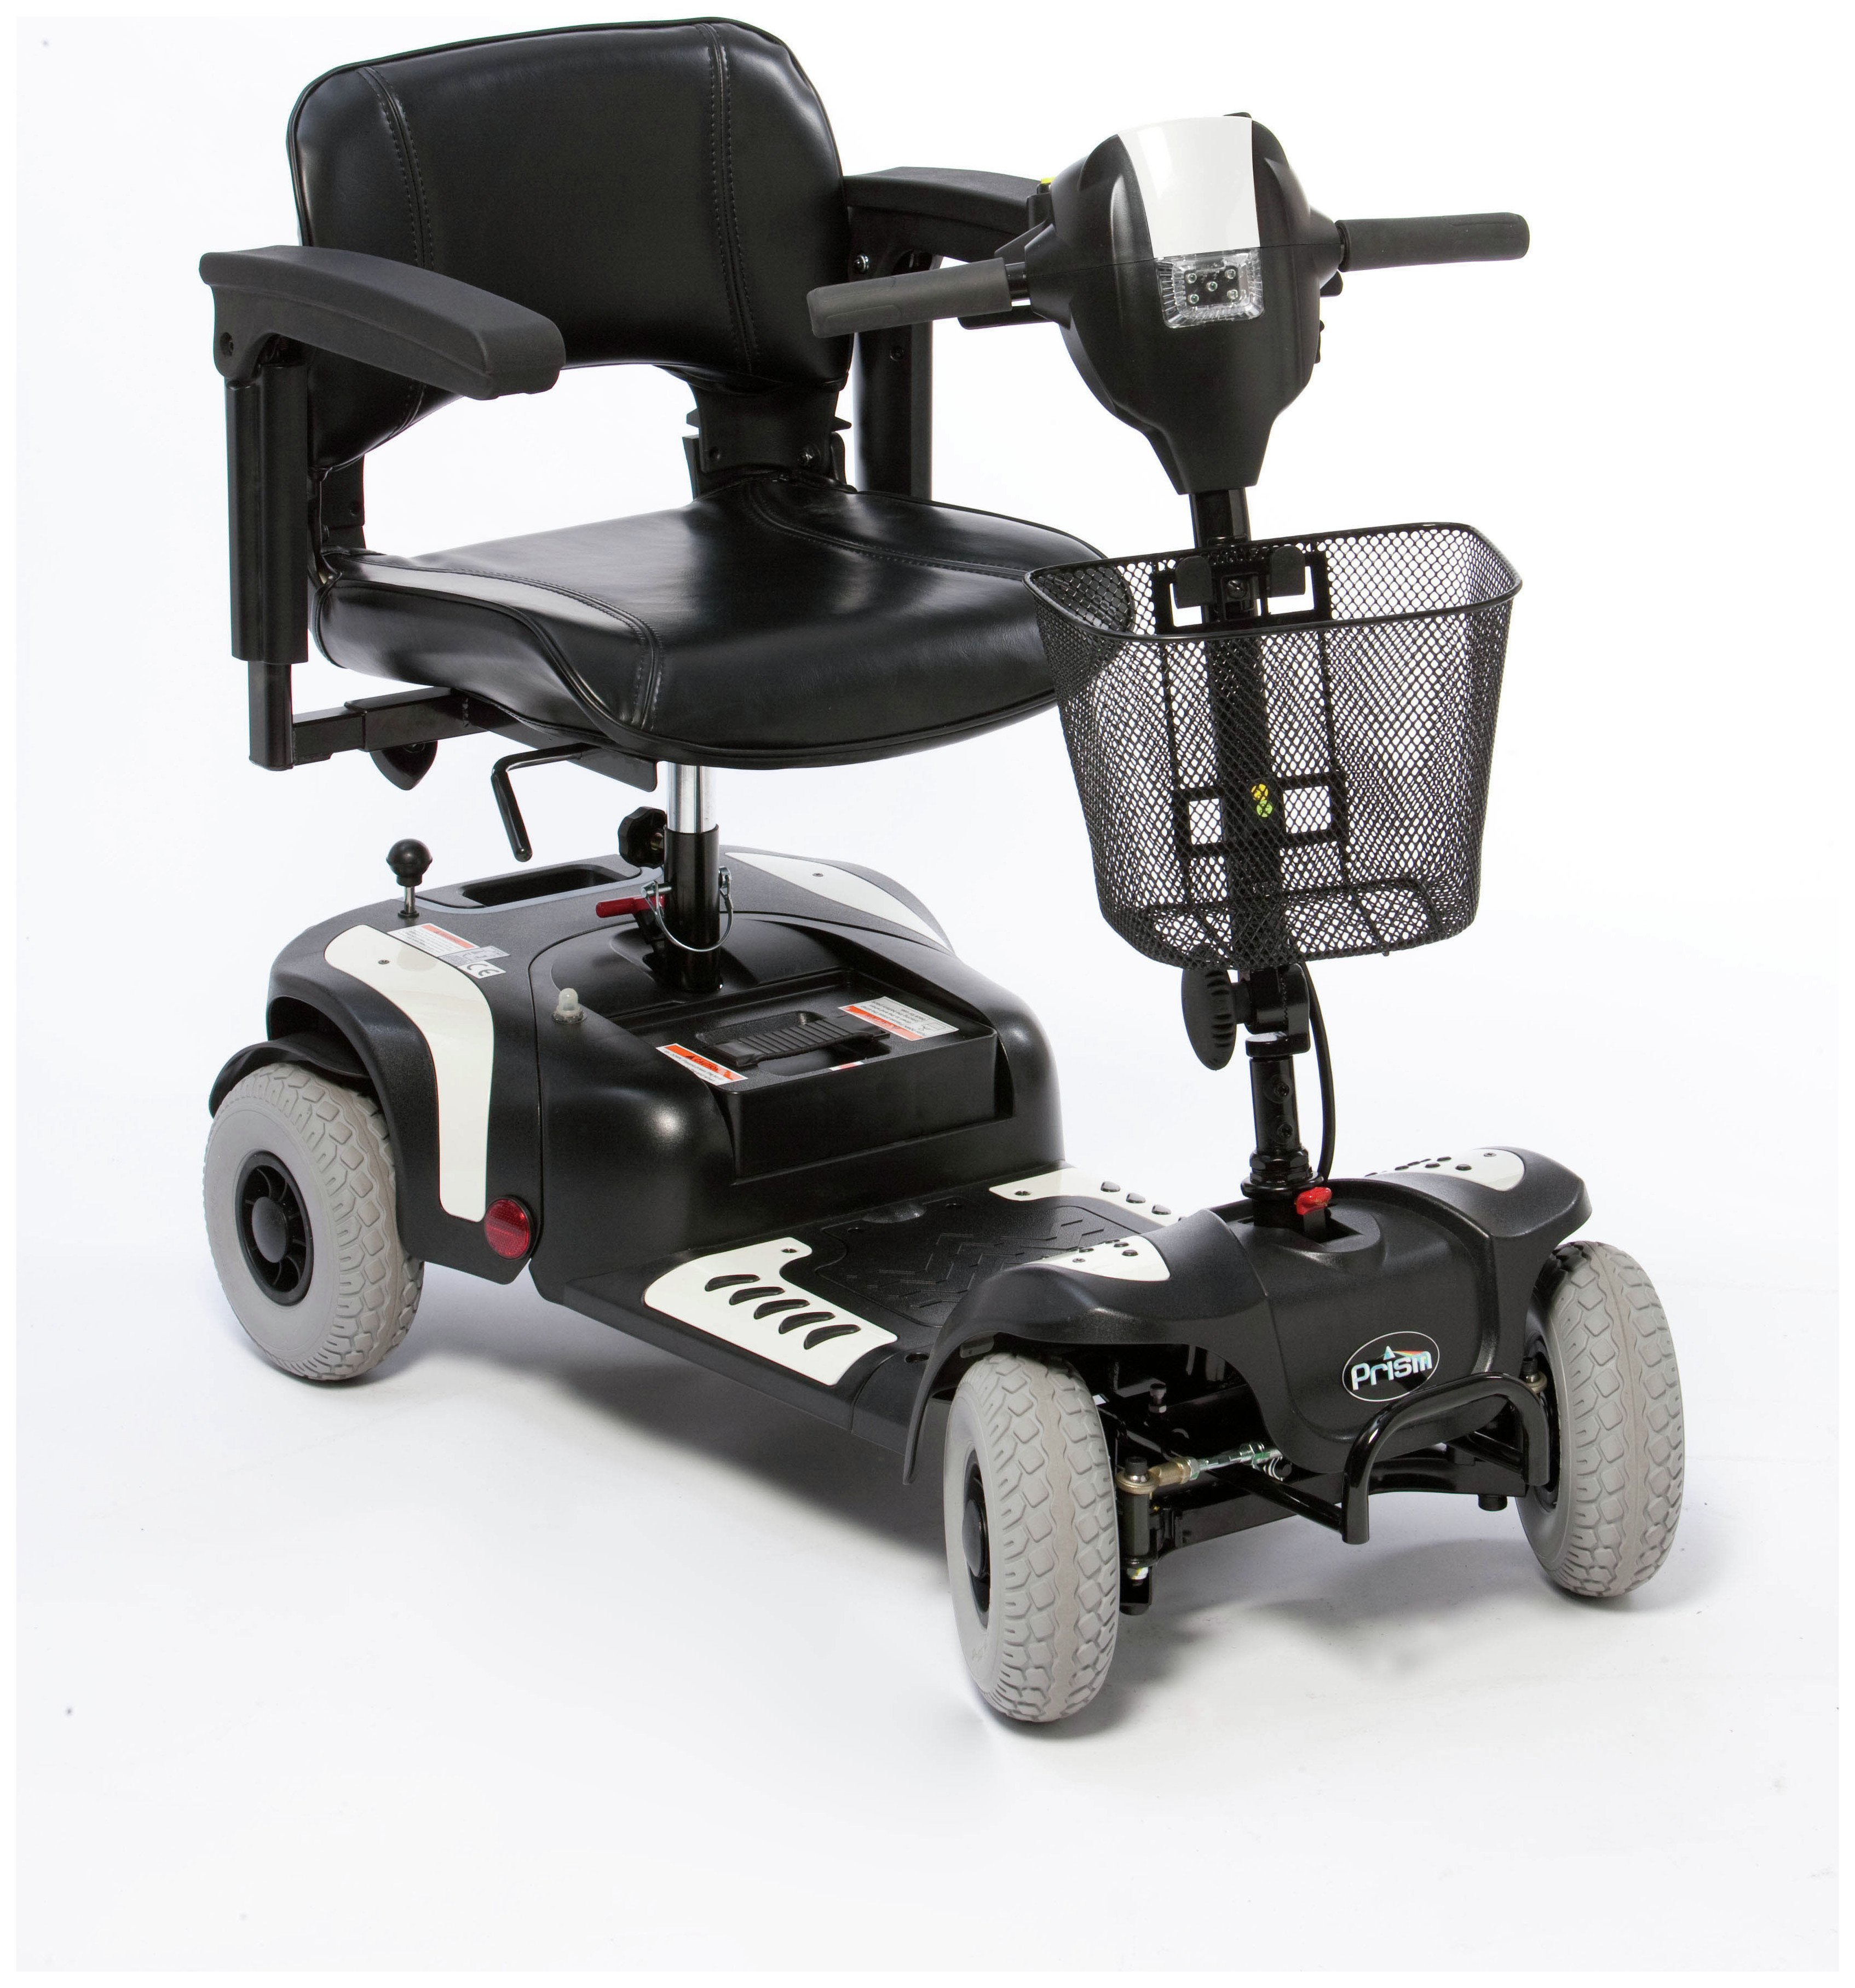 Prism Sport Mobility Scooter - Class 2